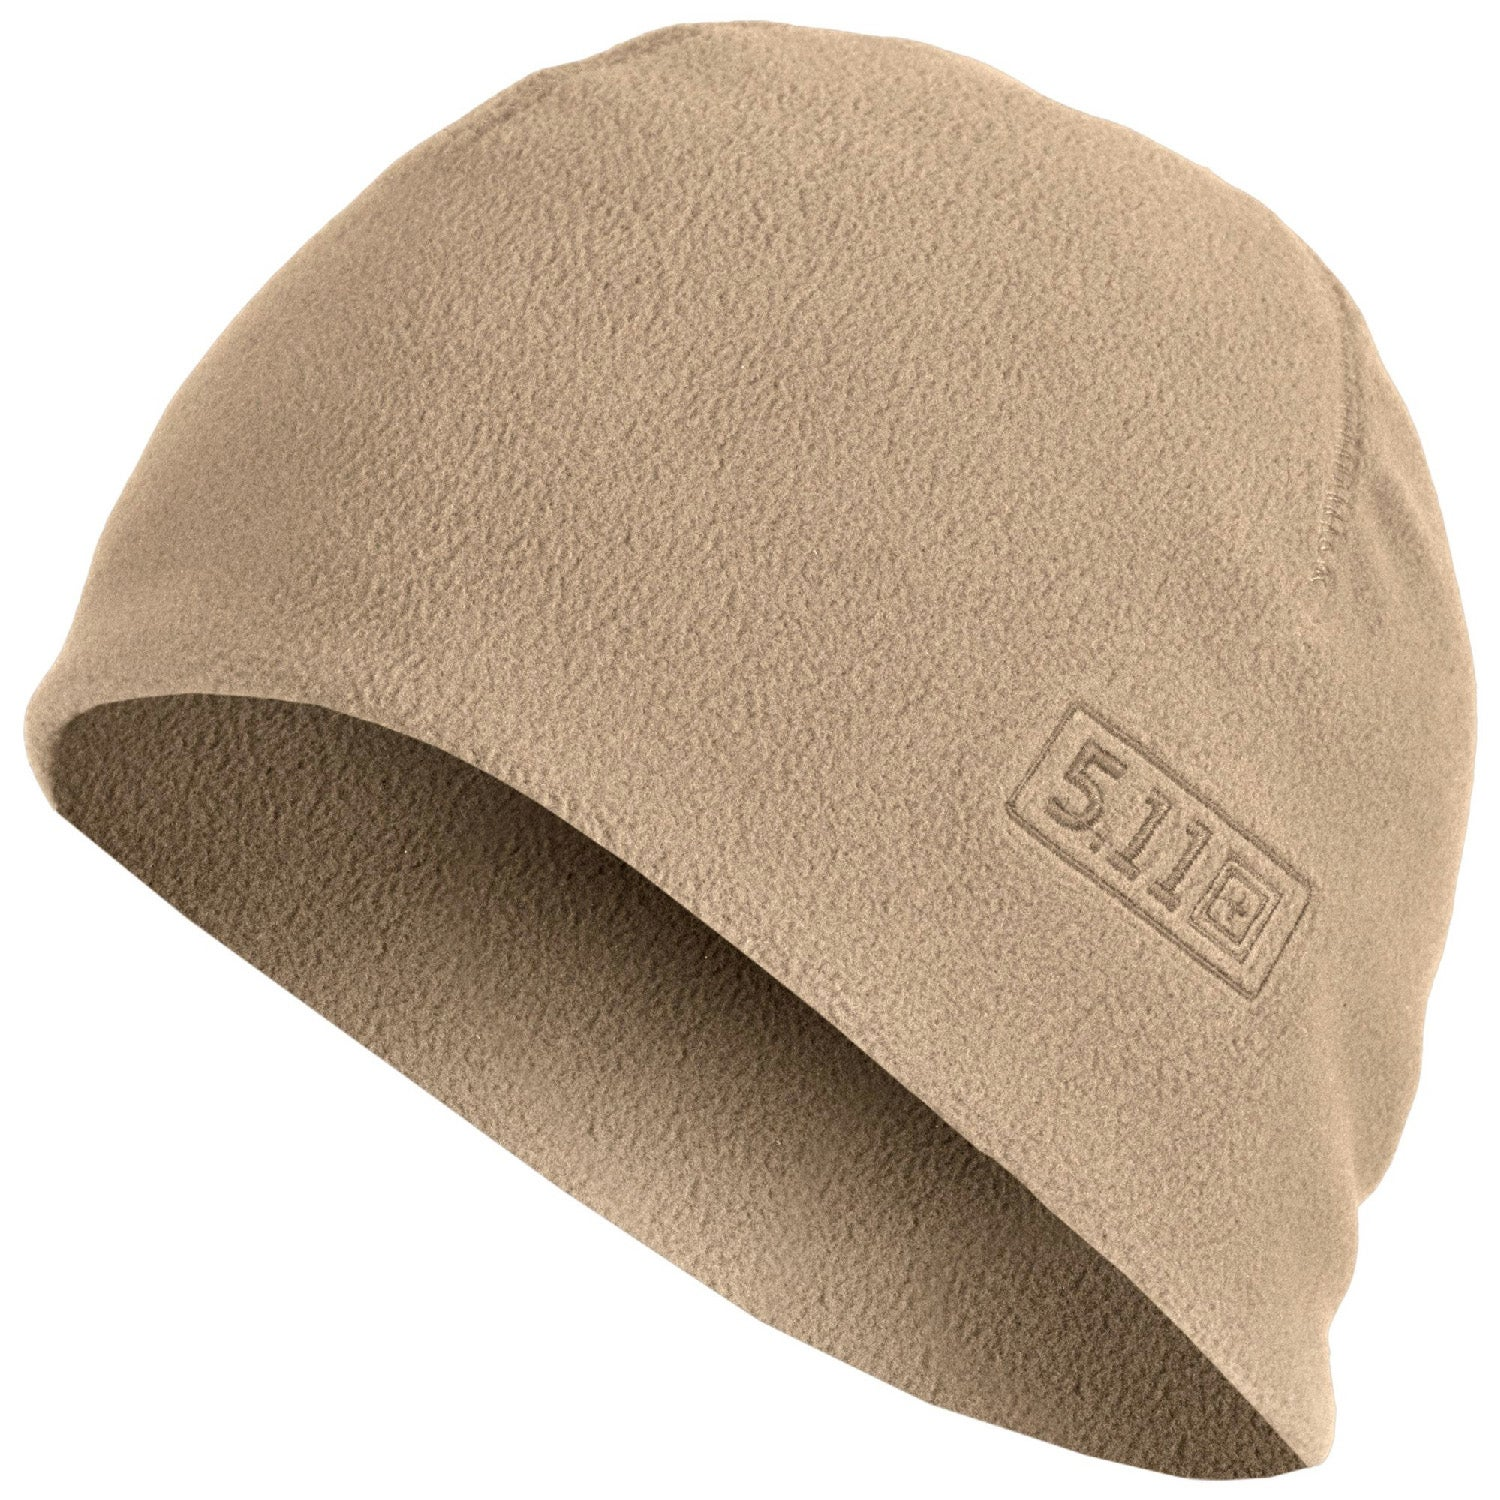 5 11 Tactical Patrol Watch Beanie From Nightgear Uk